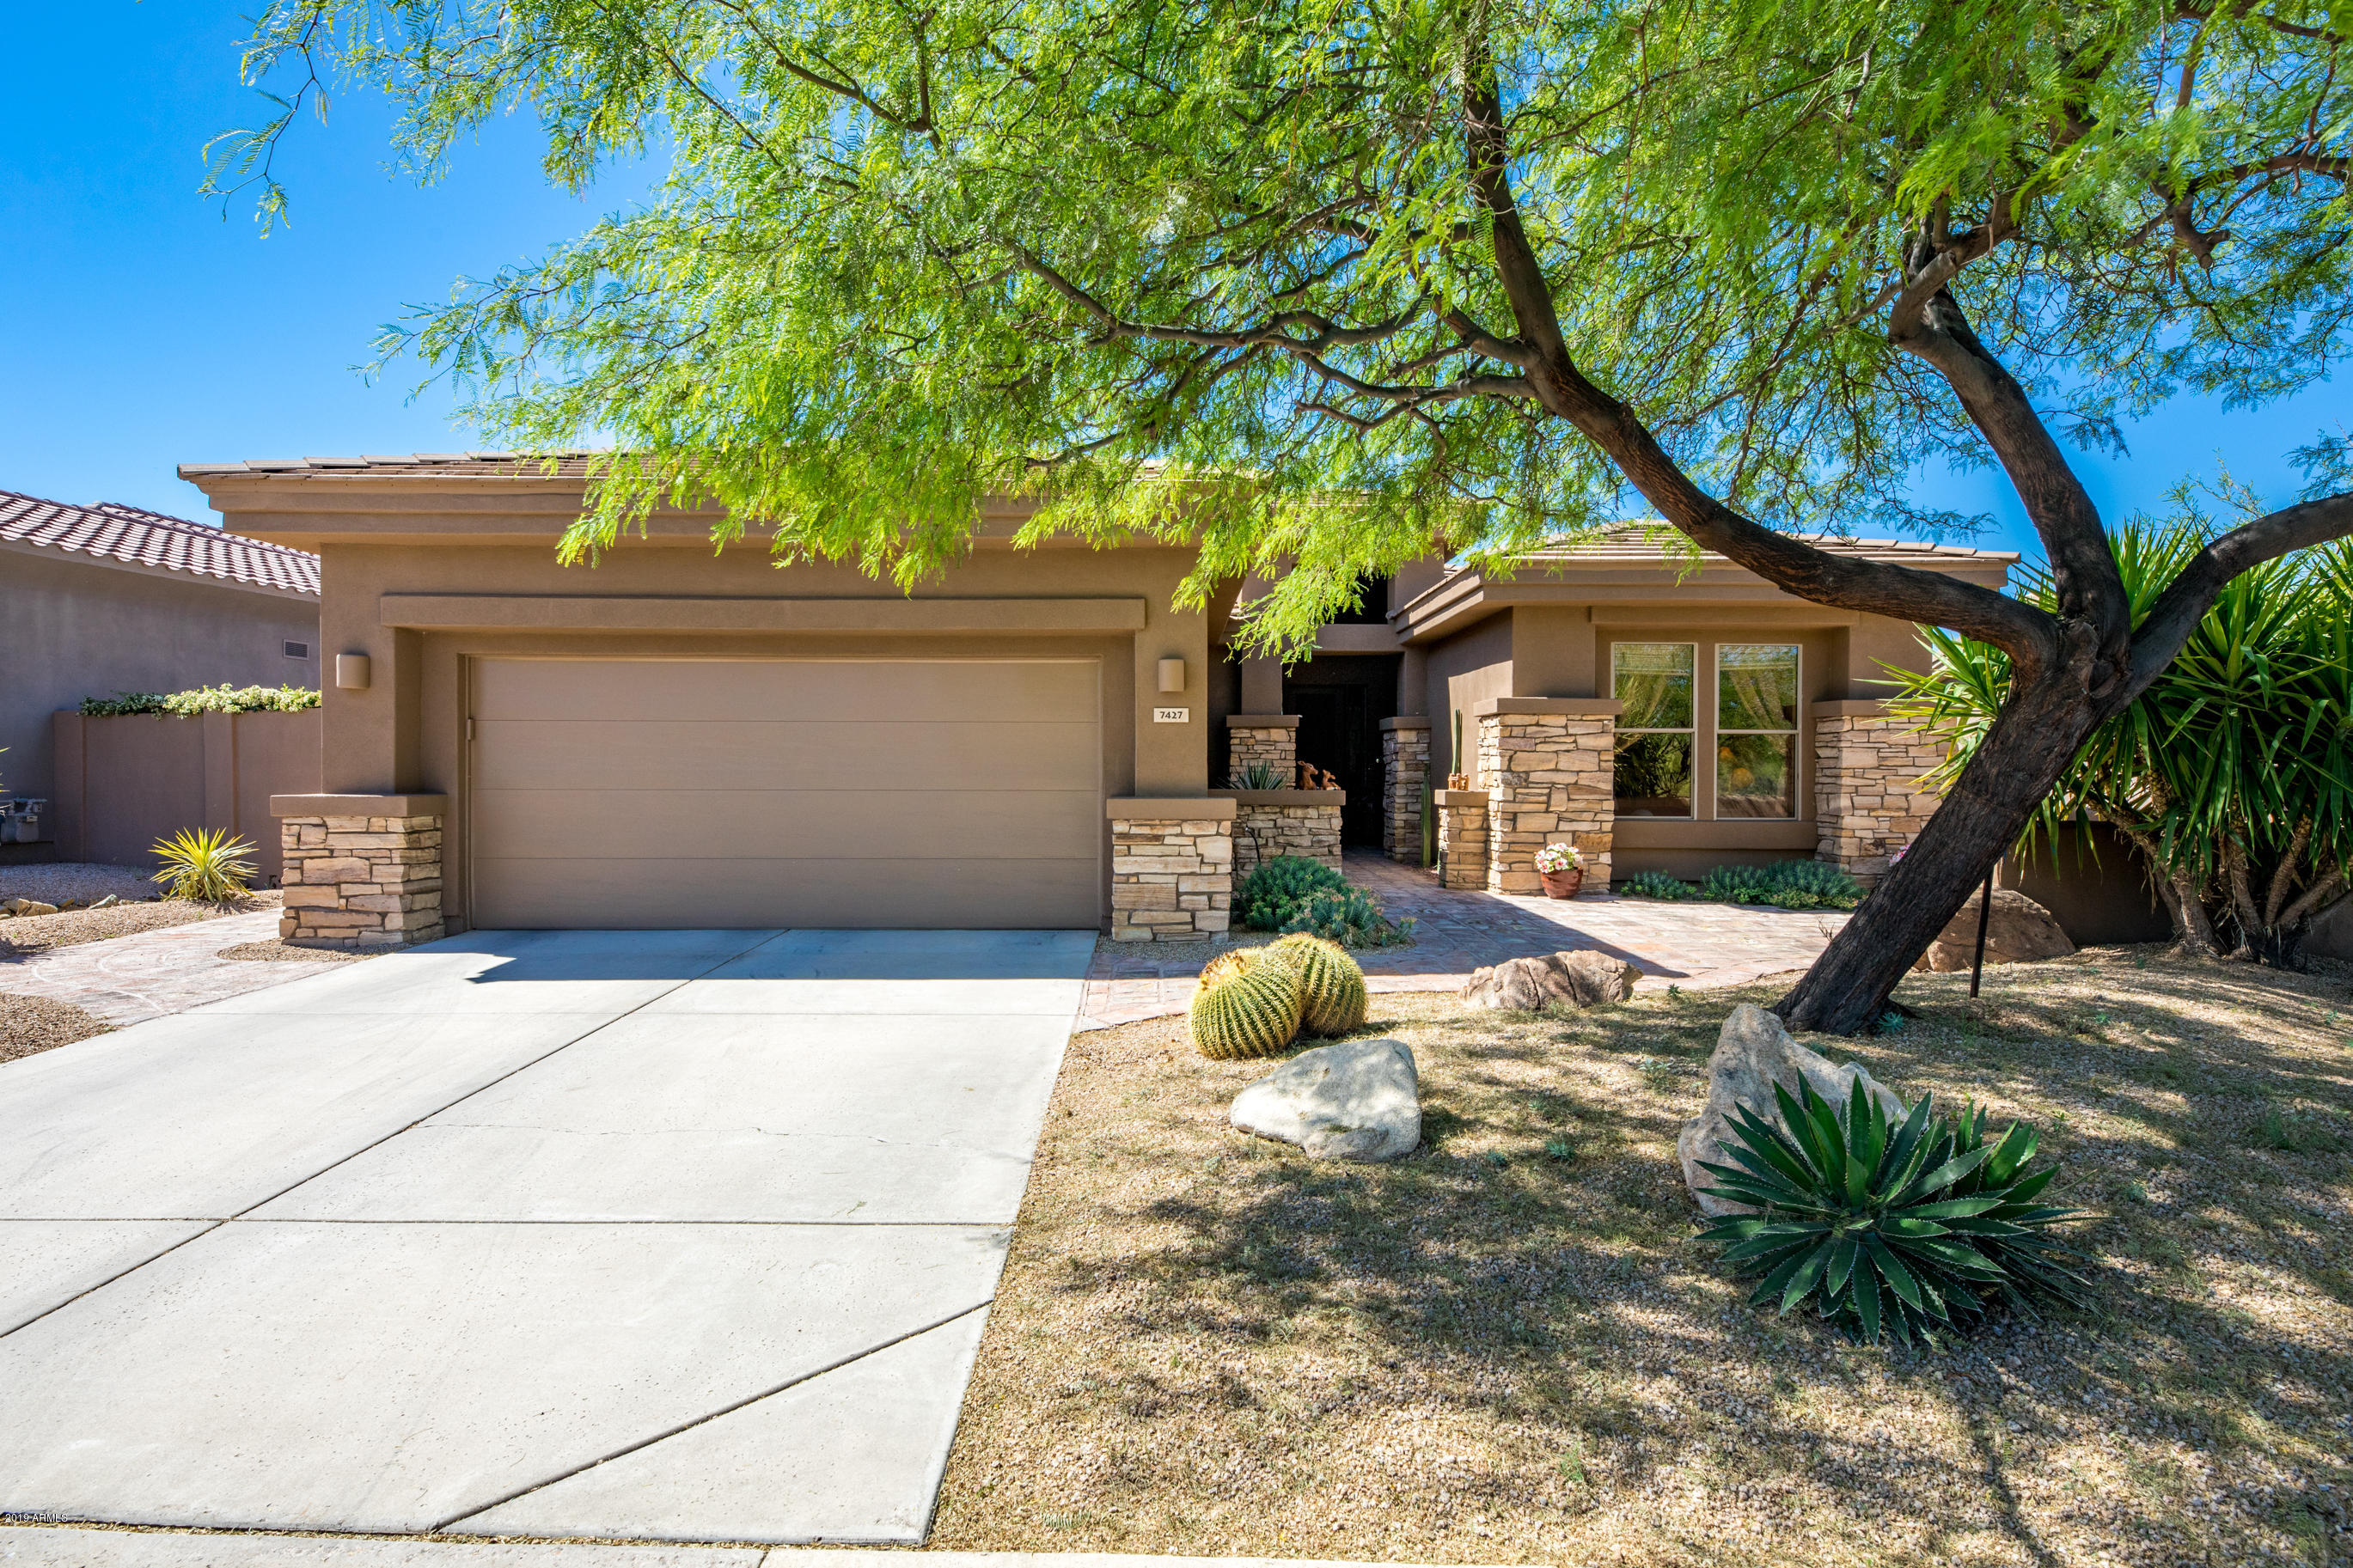 Photo of 7427 E EVENING GLOW Drive, Scottsdale, AZ 85266